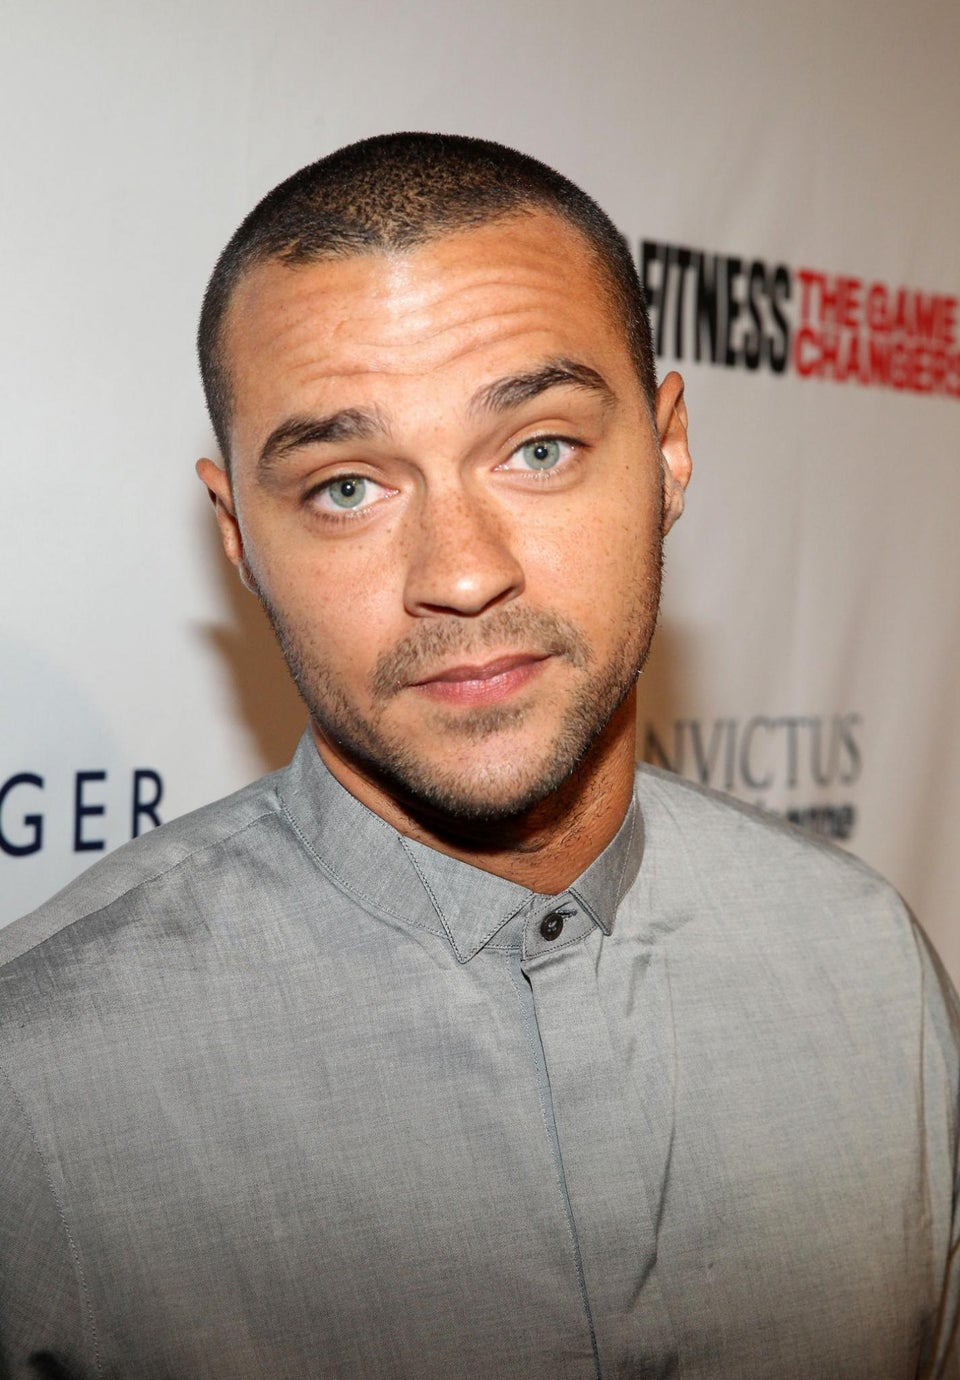 Jesse Williams Tweets Frustration with Mike Brown Shooting, Trayvon Martin Costumes